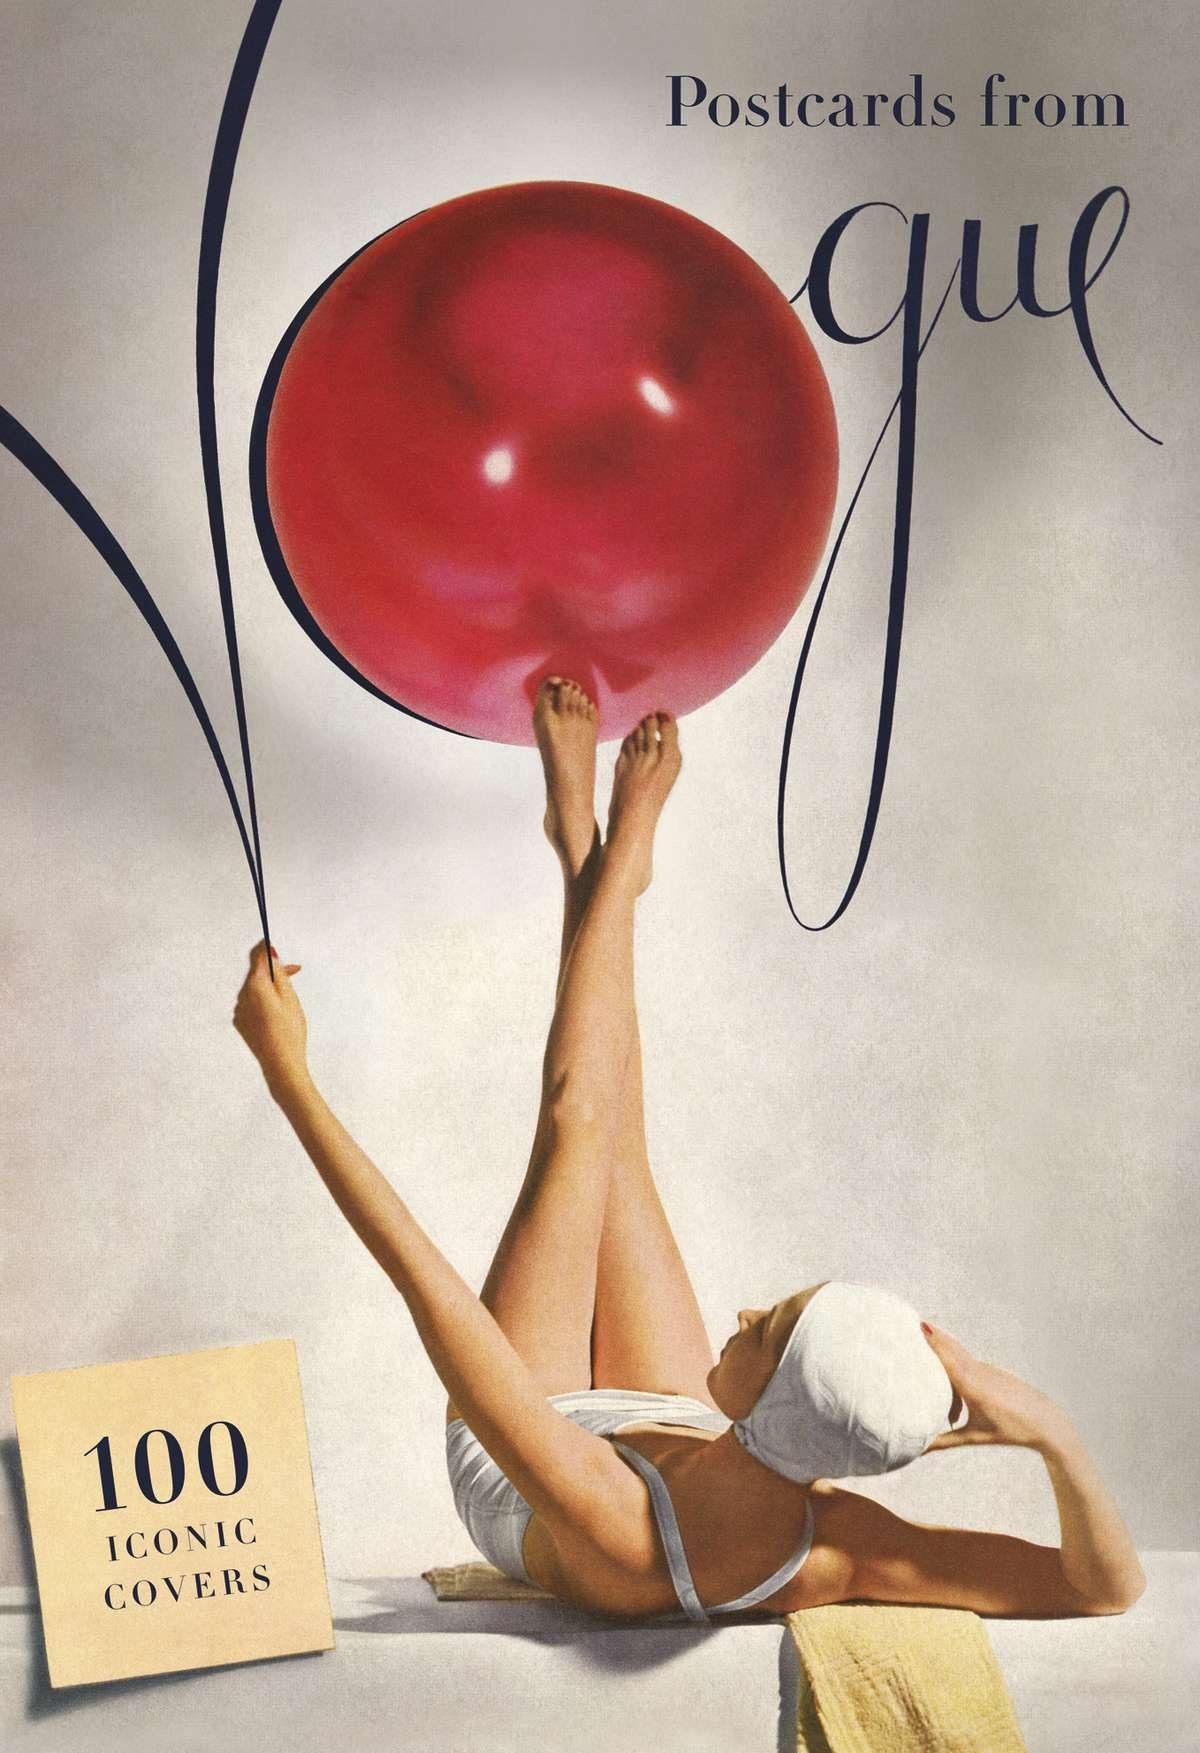 Postcards from Vogue: 100 Iconic Covers by Brand: Penguin Books (Image #1)